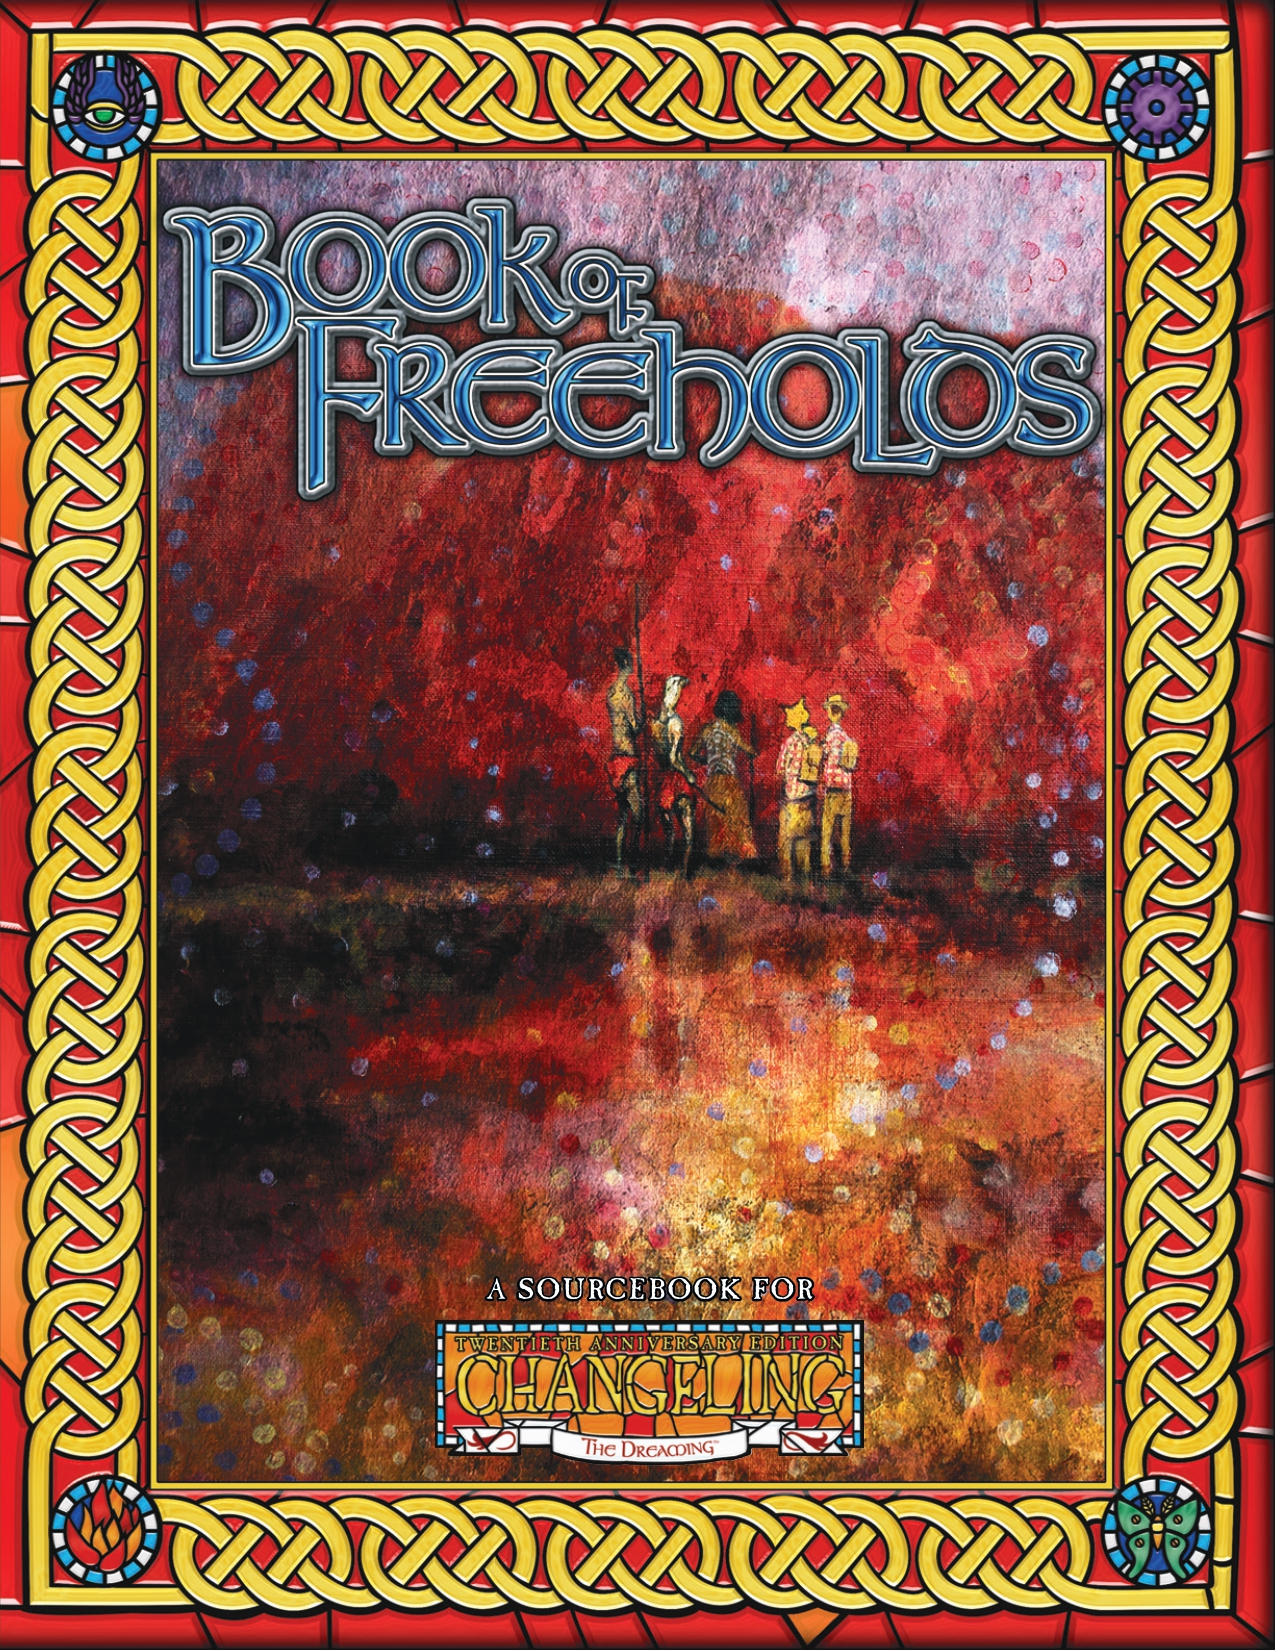 Book of Freeholds